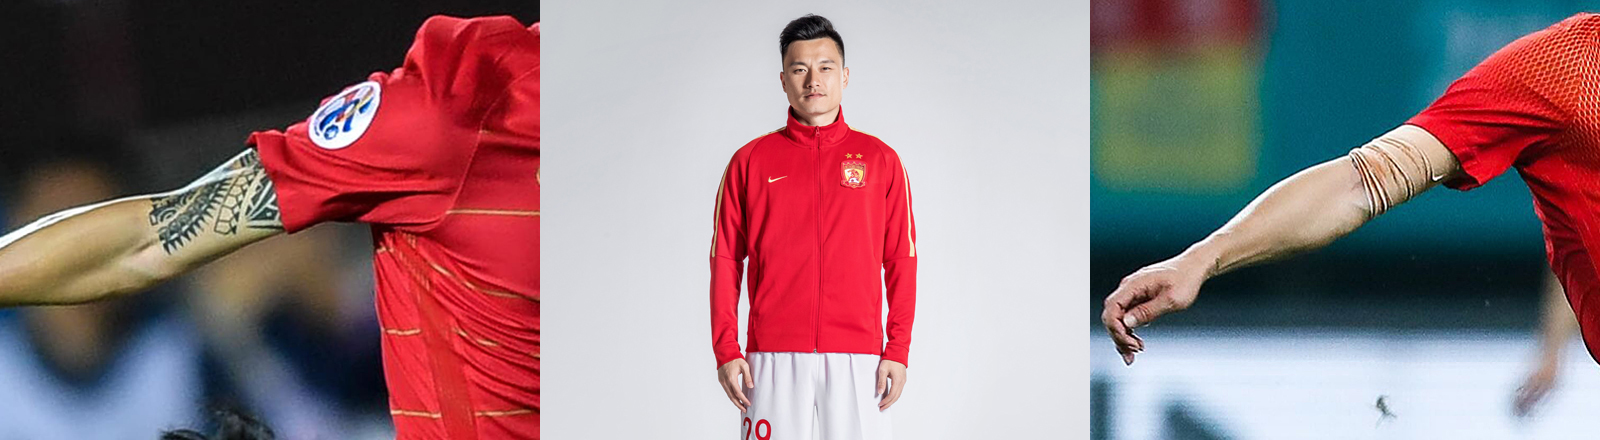 Der rechte Arm von Gao Lin mit Armbinde (links), 2018, Spiel China gegen Wales, China Cup International Football Championship, Guangxi Sports Center, 22.03.2018 in Nanning, China |  Gao Lin, Portrait, 2018, Guangzhou Evergrande Taobao F.C. | Der rechte Arm von Gao Lin ohne Armbinde (rechts), 2018,  AFC Champions League in Guangzhou